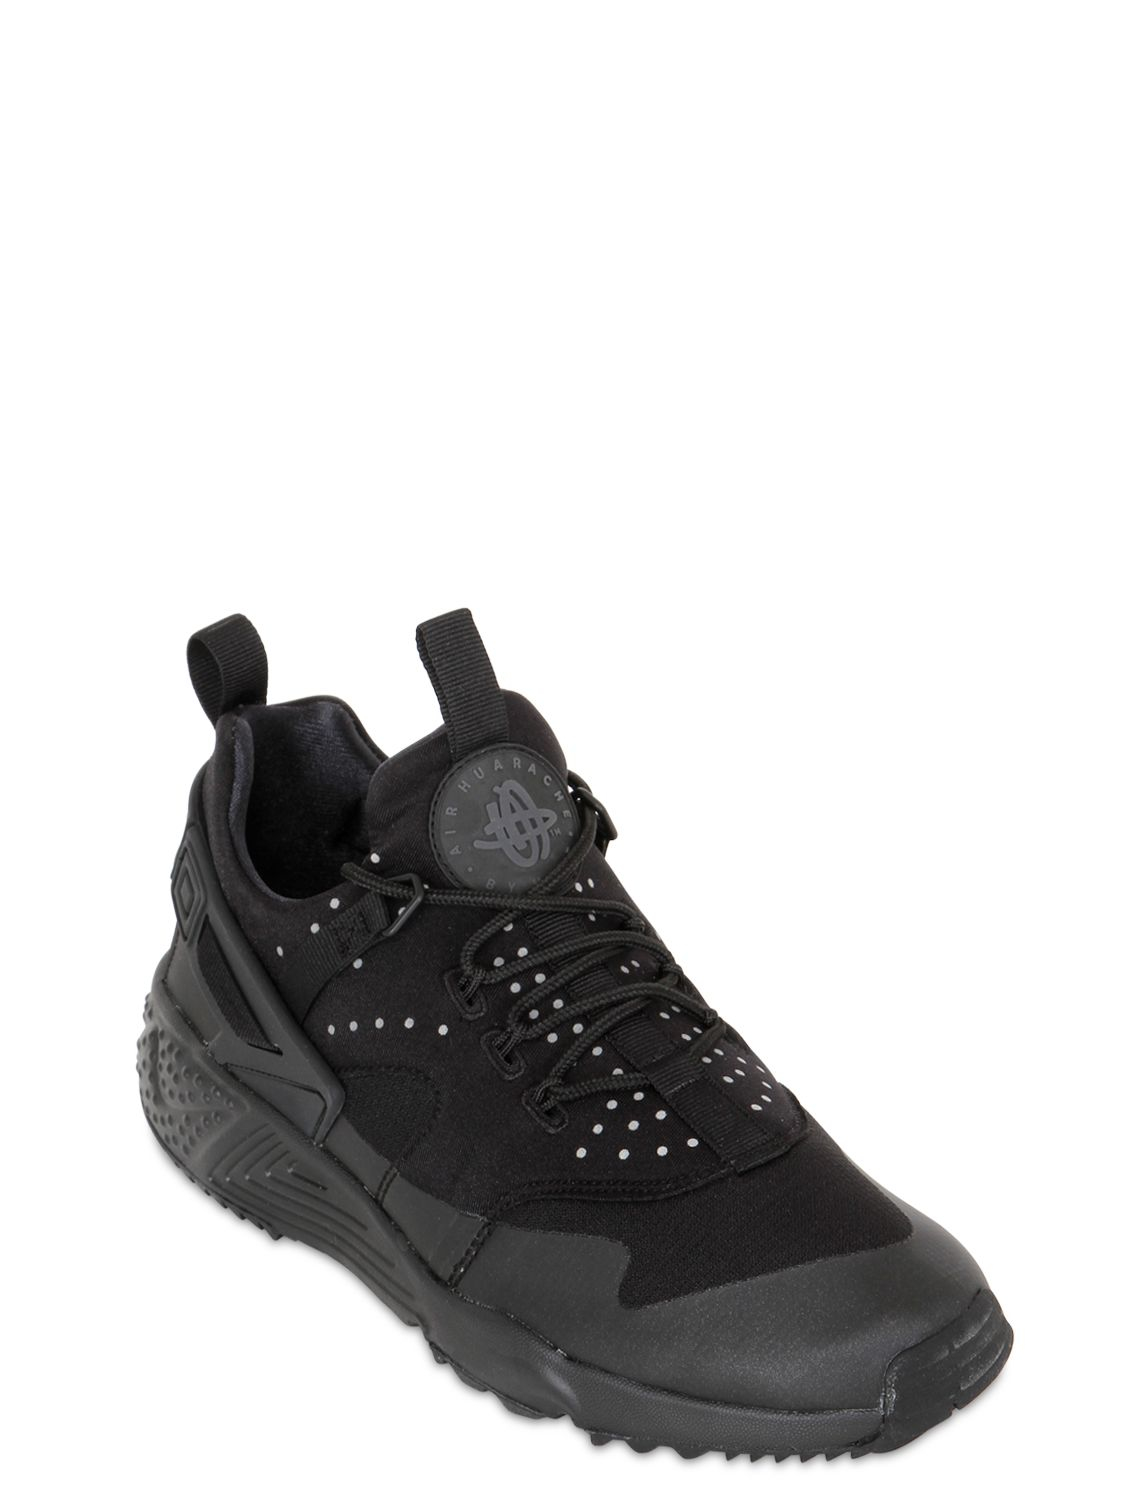 info for 624be c11b6 Nike Air Huarache 2 3 Utility Sneakers in Black for Men - Lyst